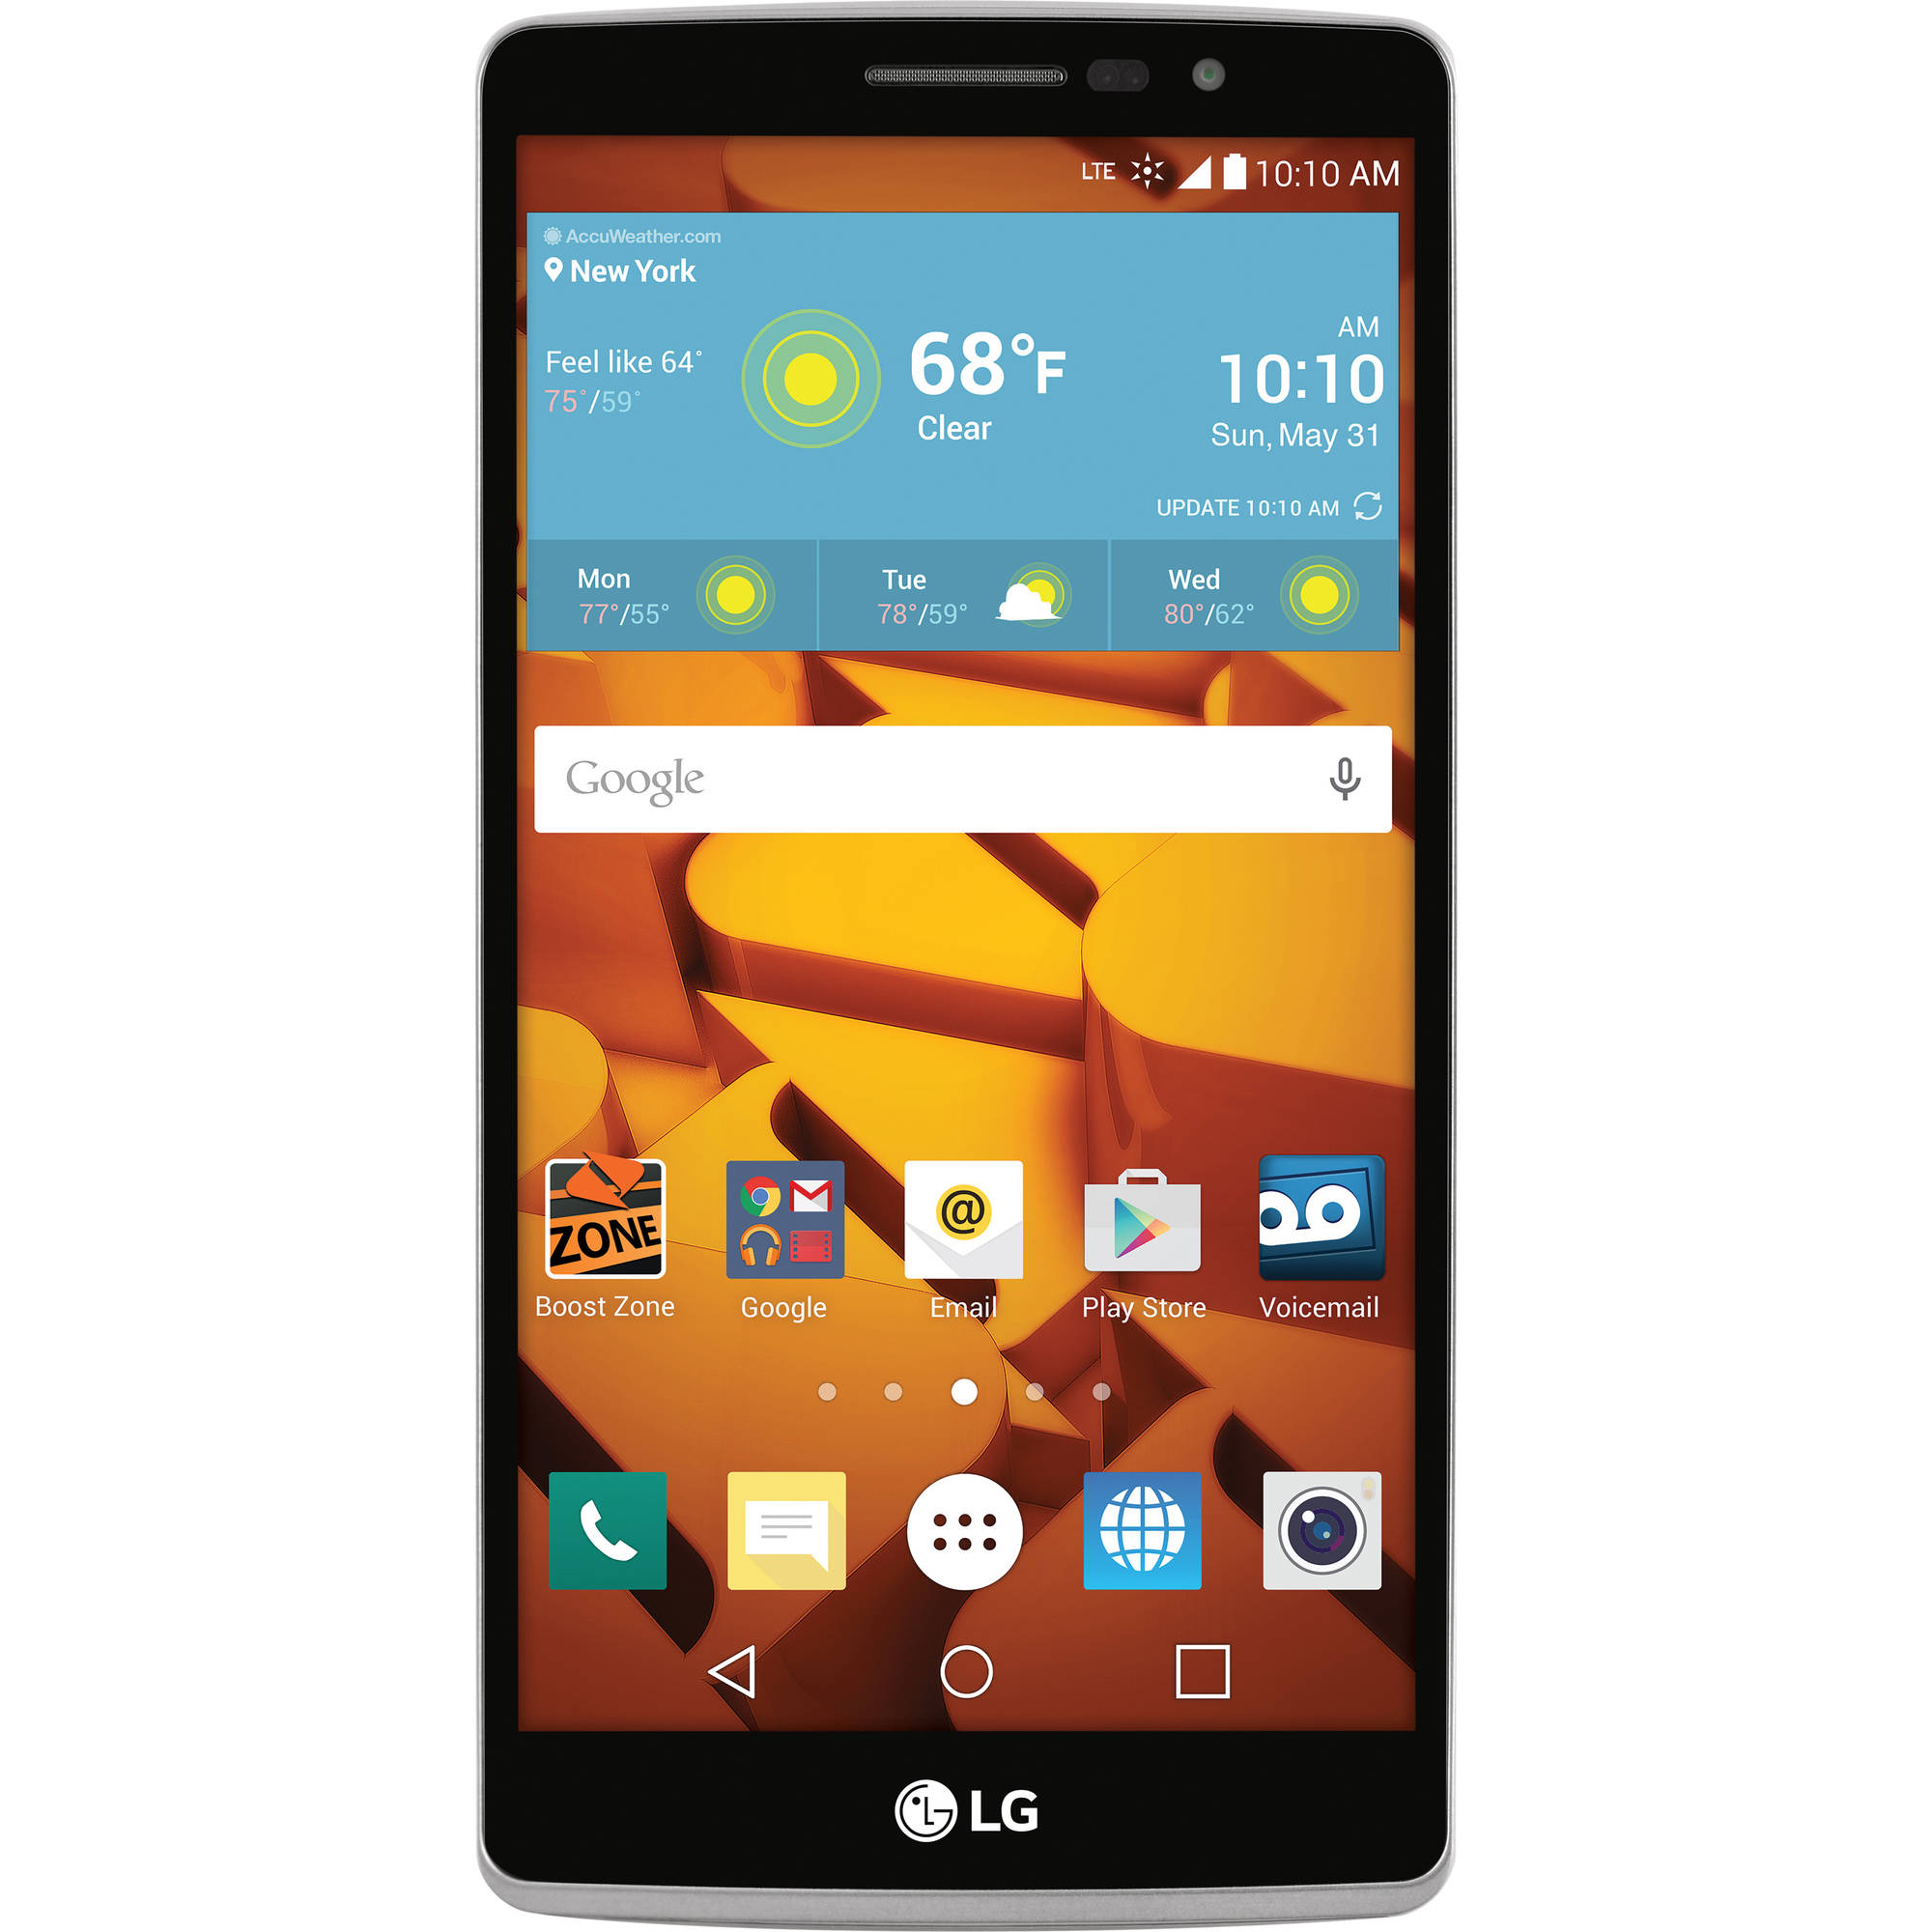 Camera Boost Mobile Android Phones For Sale boost lg stylo prepaid smartphone walmart com